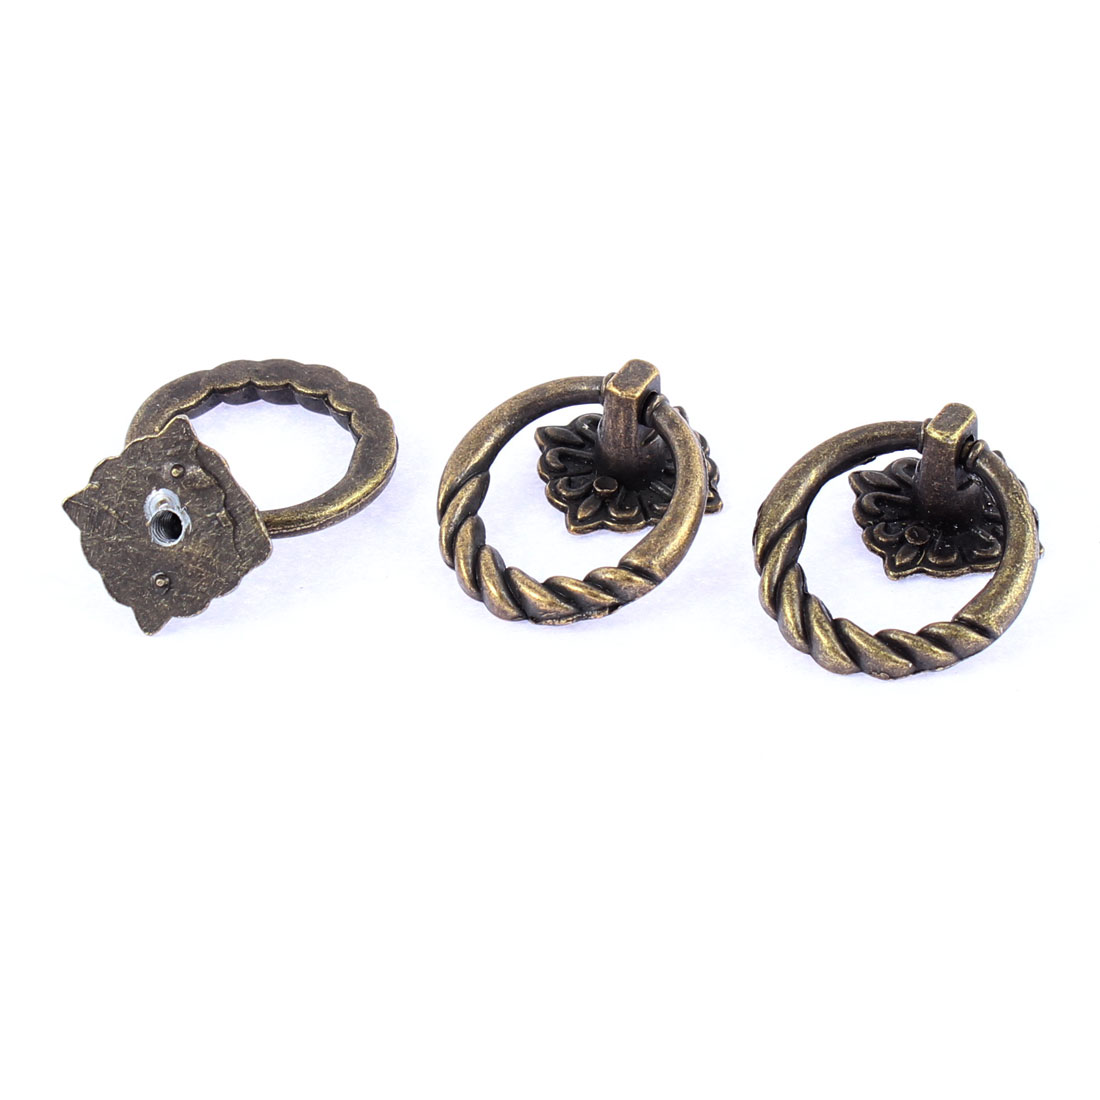 Furniture Drawer Door Vintage Style Zinc Alloy Pull Handles Rings 3mm Thread Dia 3pcs